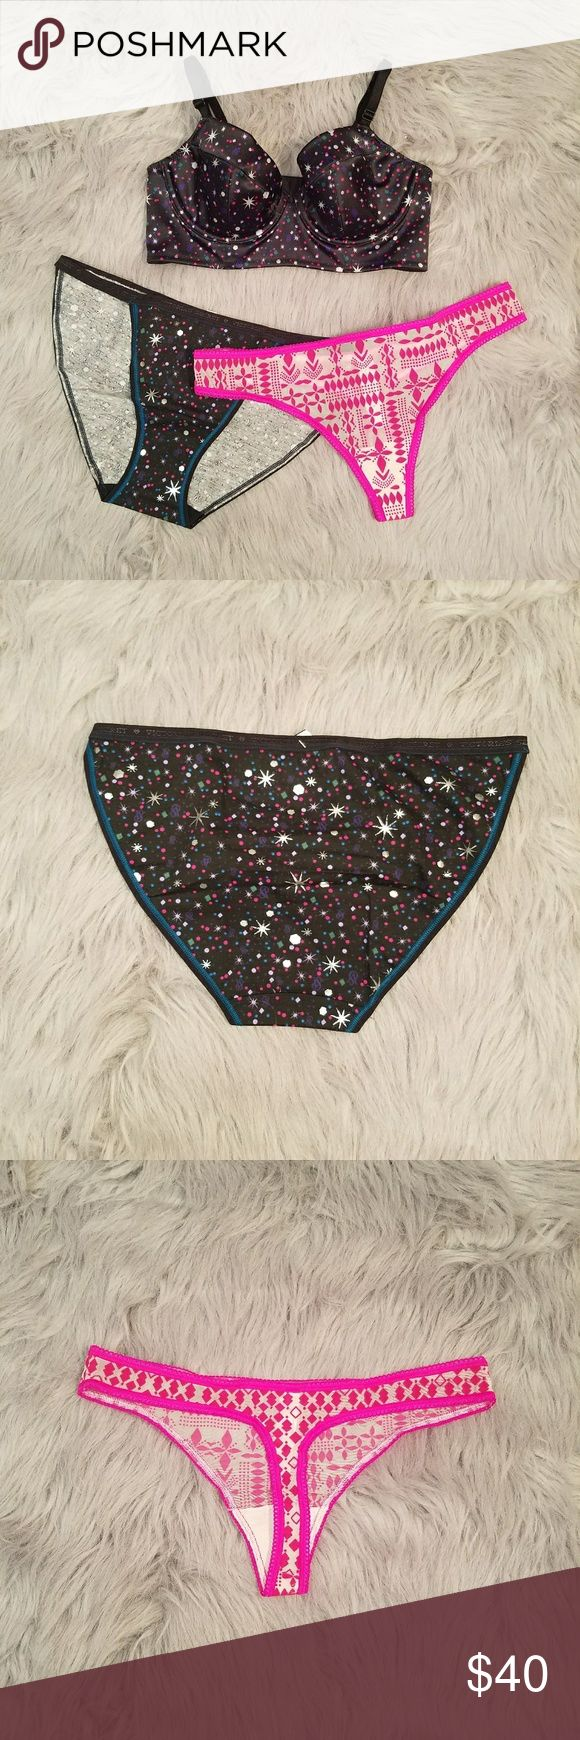 2 sets for $60! Super cute VS bra and panties set. Bra is a size 34B mini bustier with star and confetti print all over, silky satin feel! Panties are a matching cotton string bikini in size MEDIUM and a pink flocked fairisle print thong in size MEDIUM, the pink matches the pink in the confetti print! $40 for this 3 piece set or pick 2 3 piece sets for $60. That's 2 bras and 4 panties for just $60! All items are NWT or new in bag and only taken out for pics! Victoria's Secret Intimates…